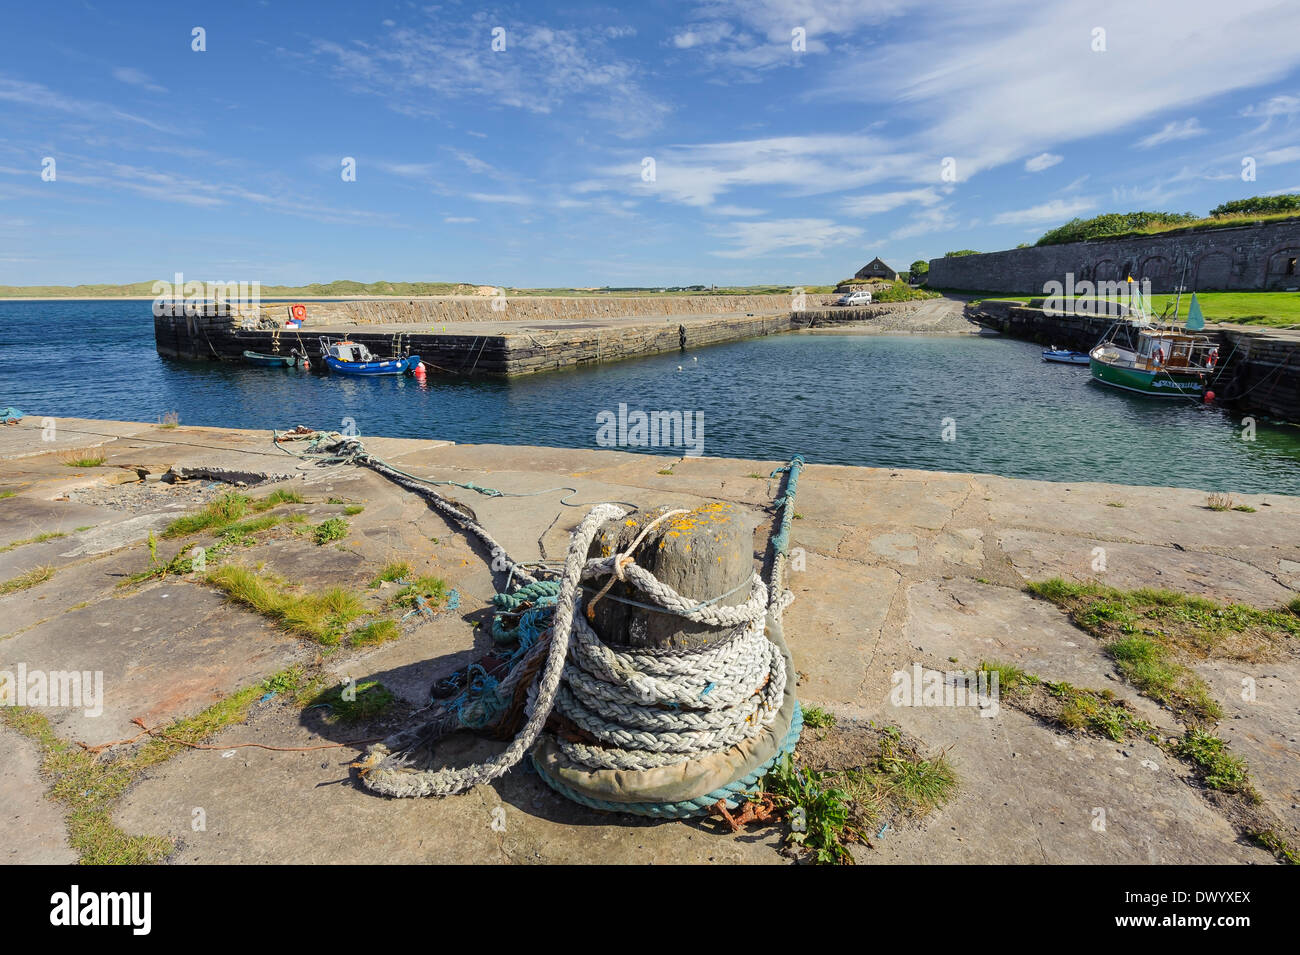 The small harbour at Castletown, Caithness, Scotland. - Stock Image